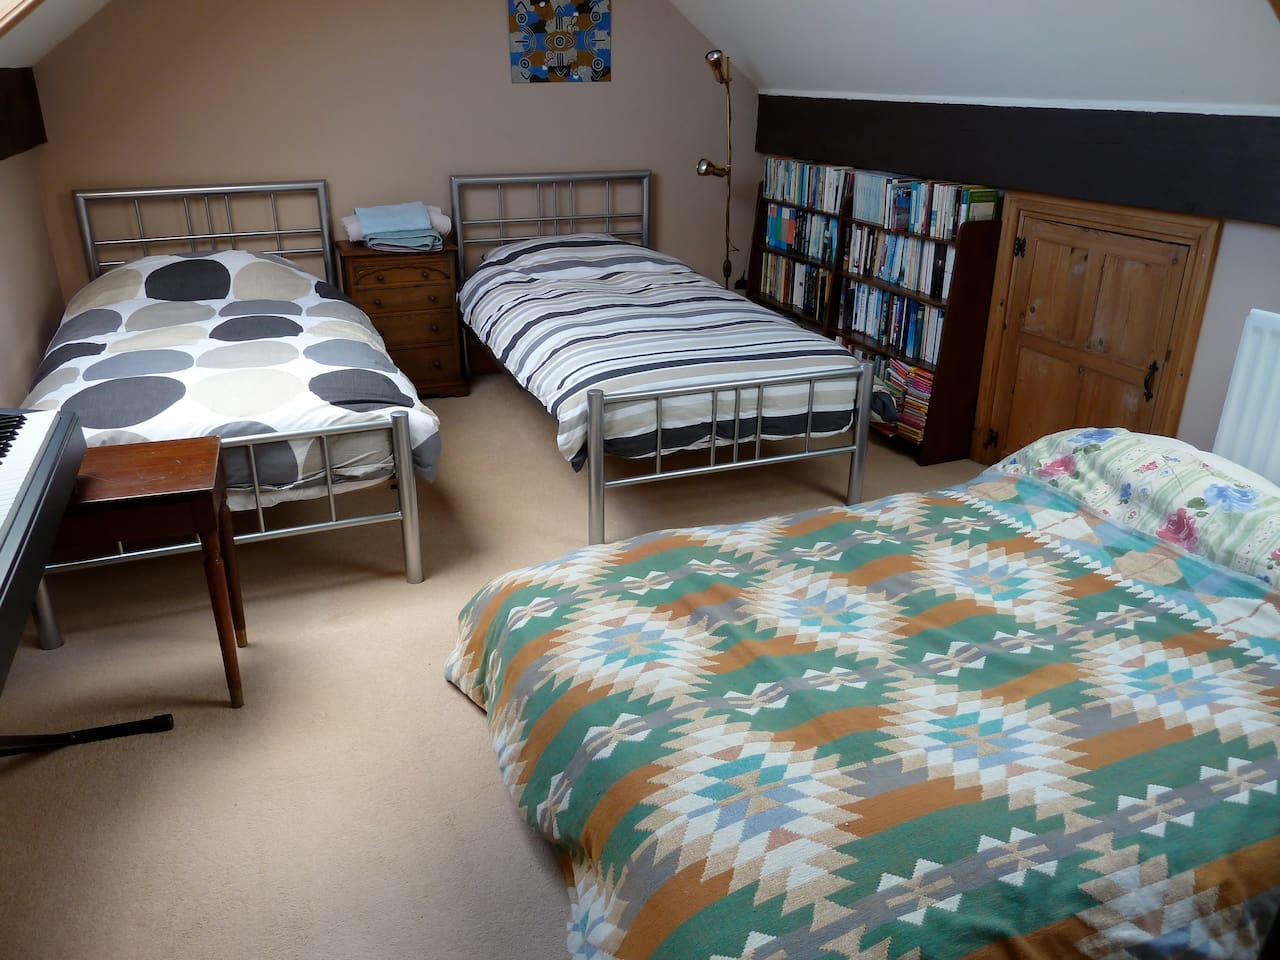 The loft room with two single beds and a futon